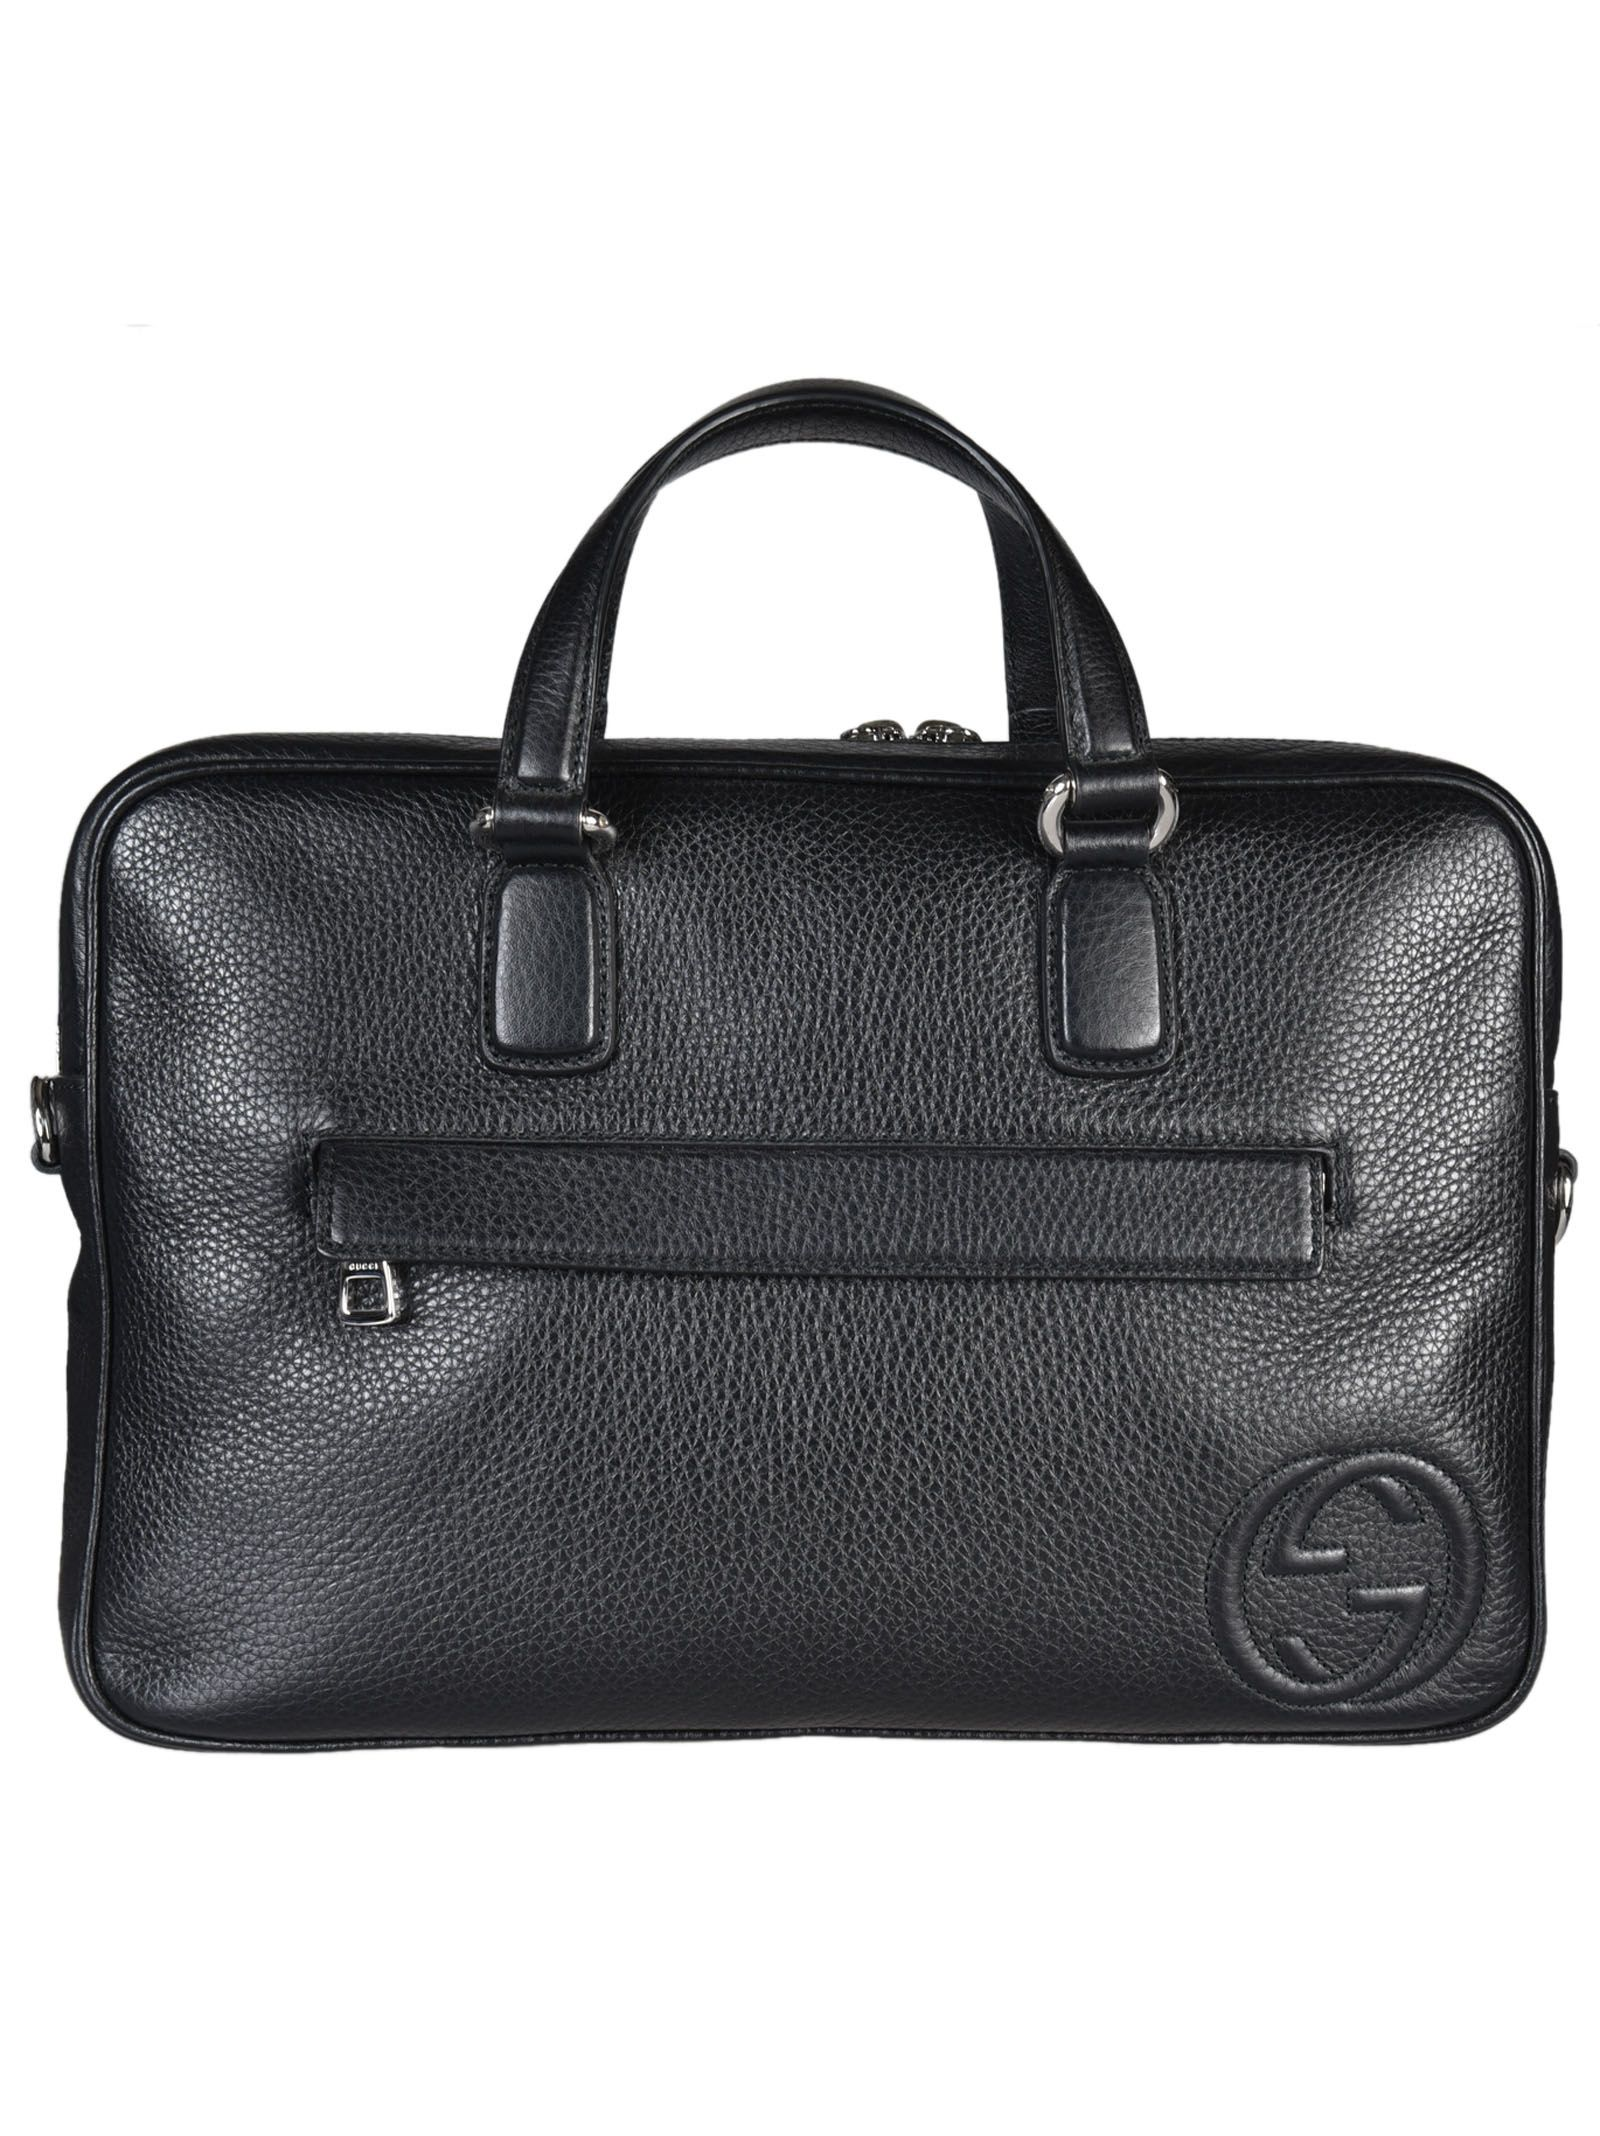 Gucci Soho Leather Briefcase